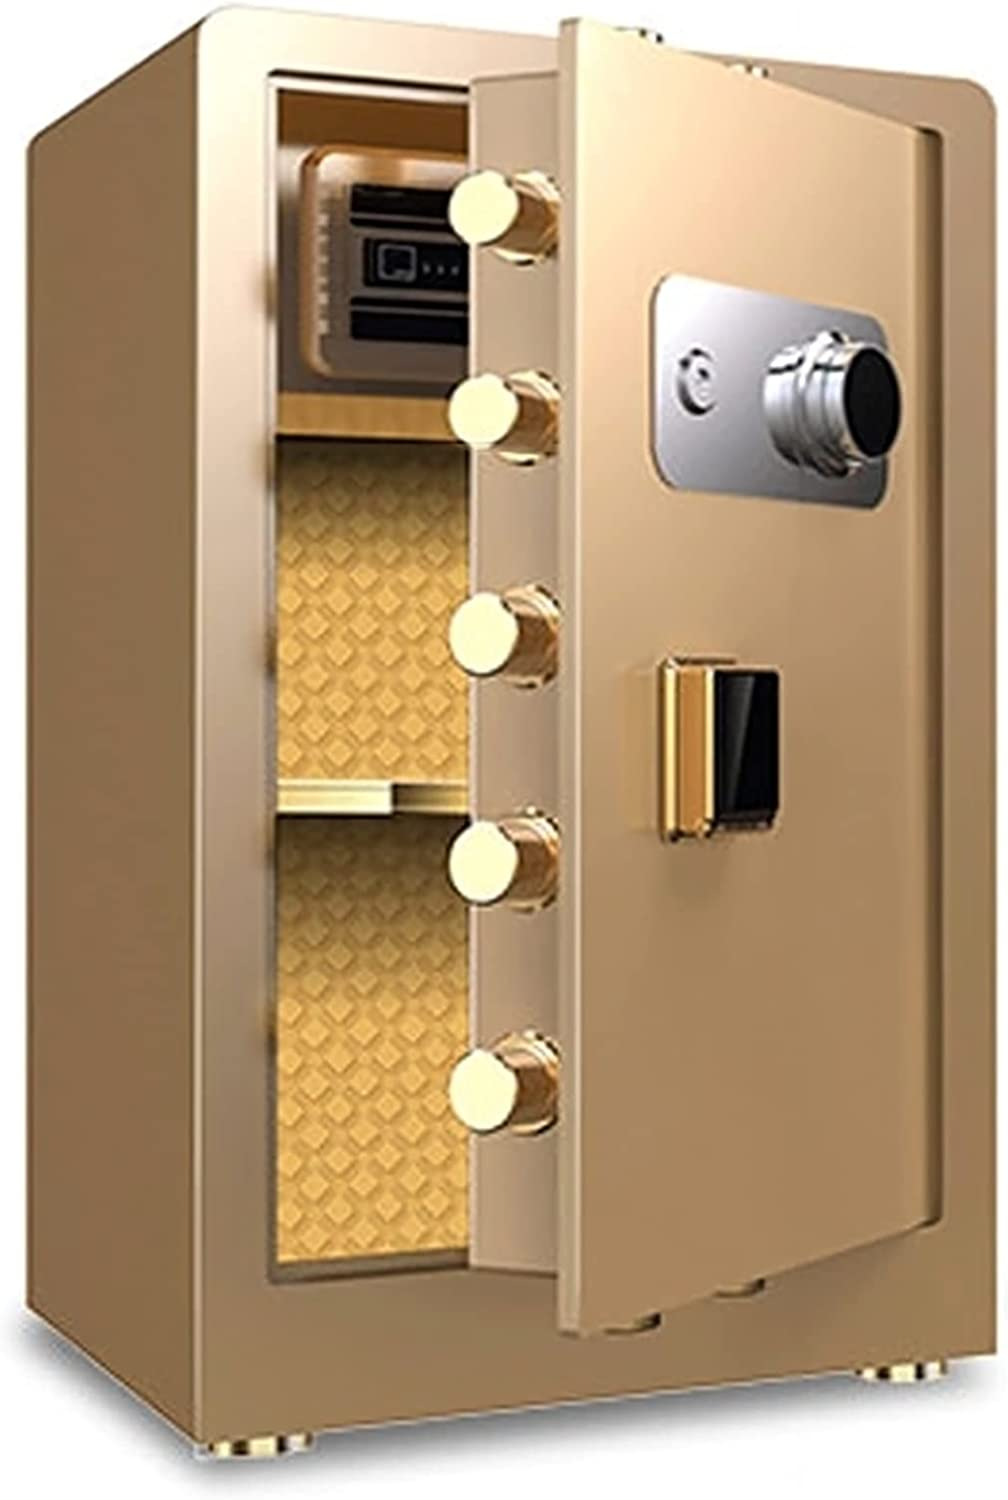 Safes Home Office Hotel High quality Fireproof Dep Box Steel Cash Ranking TOP13 Heavy-Duty